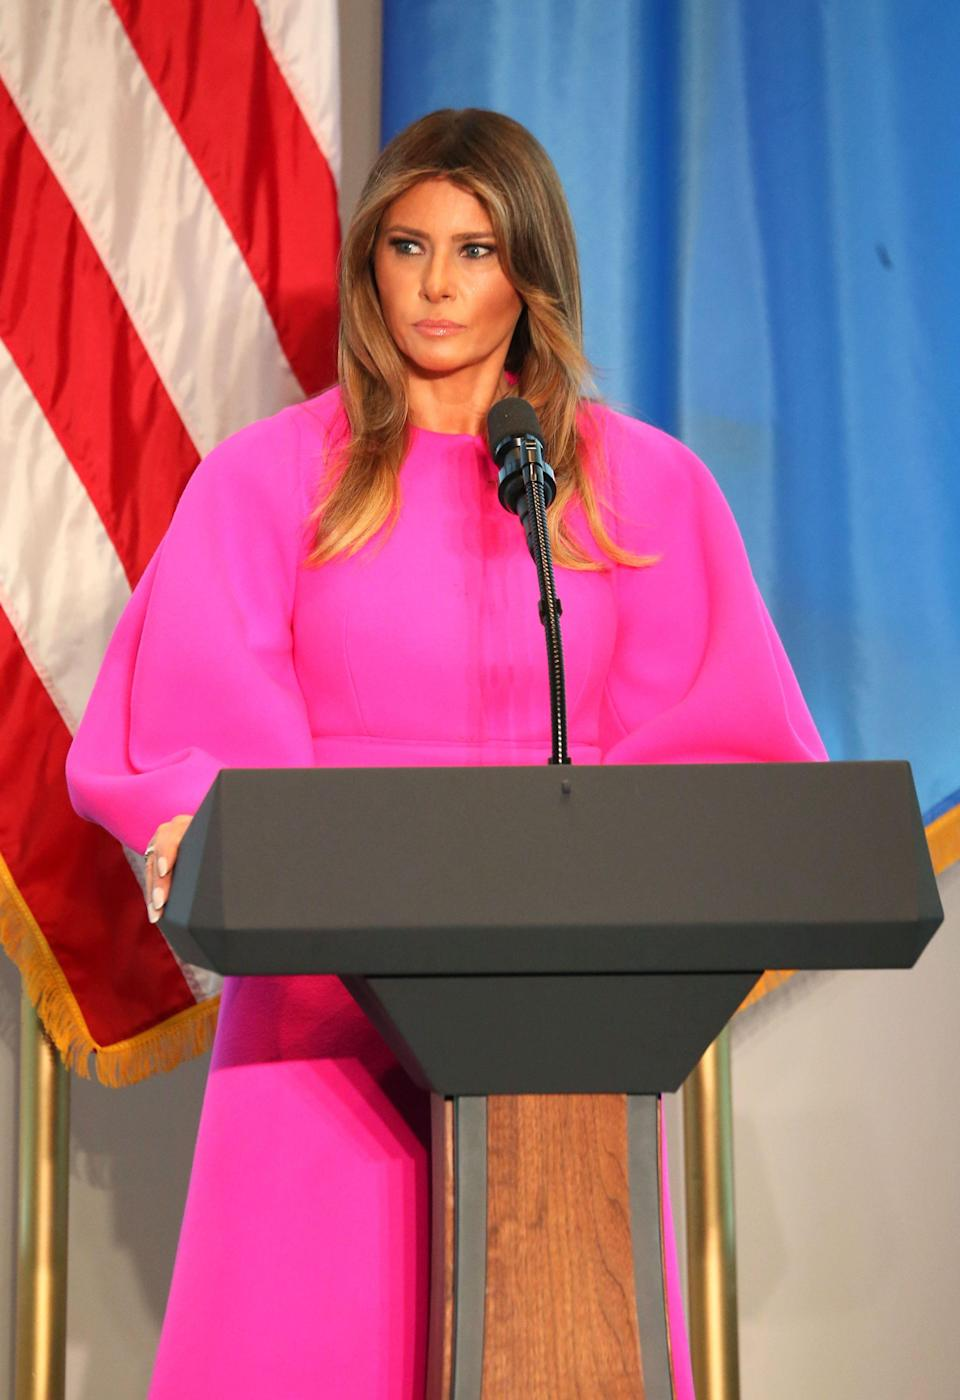 Melania wearing a £2,220fuchsia dress from Delpozo while speaking at theUnited Nations in September 2017. [Photo: Rex]